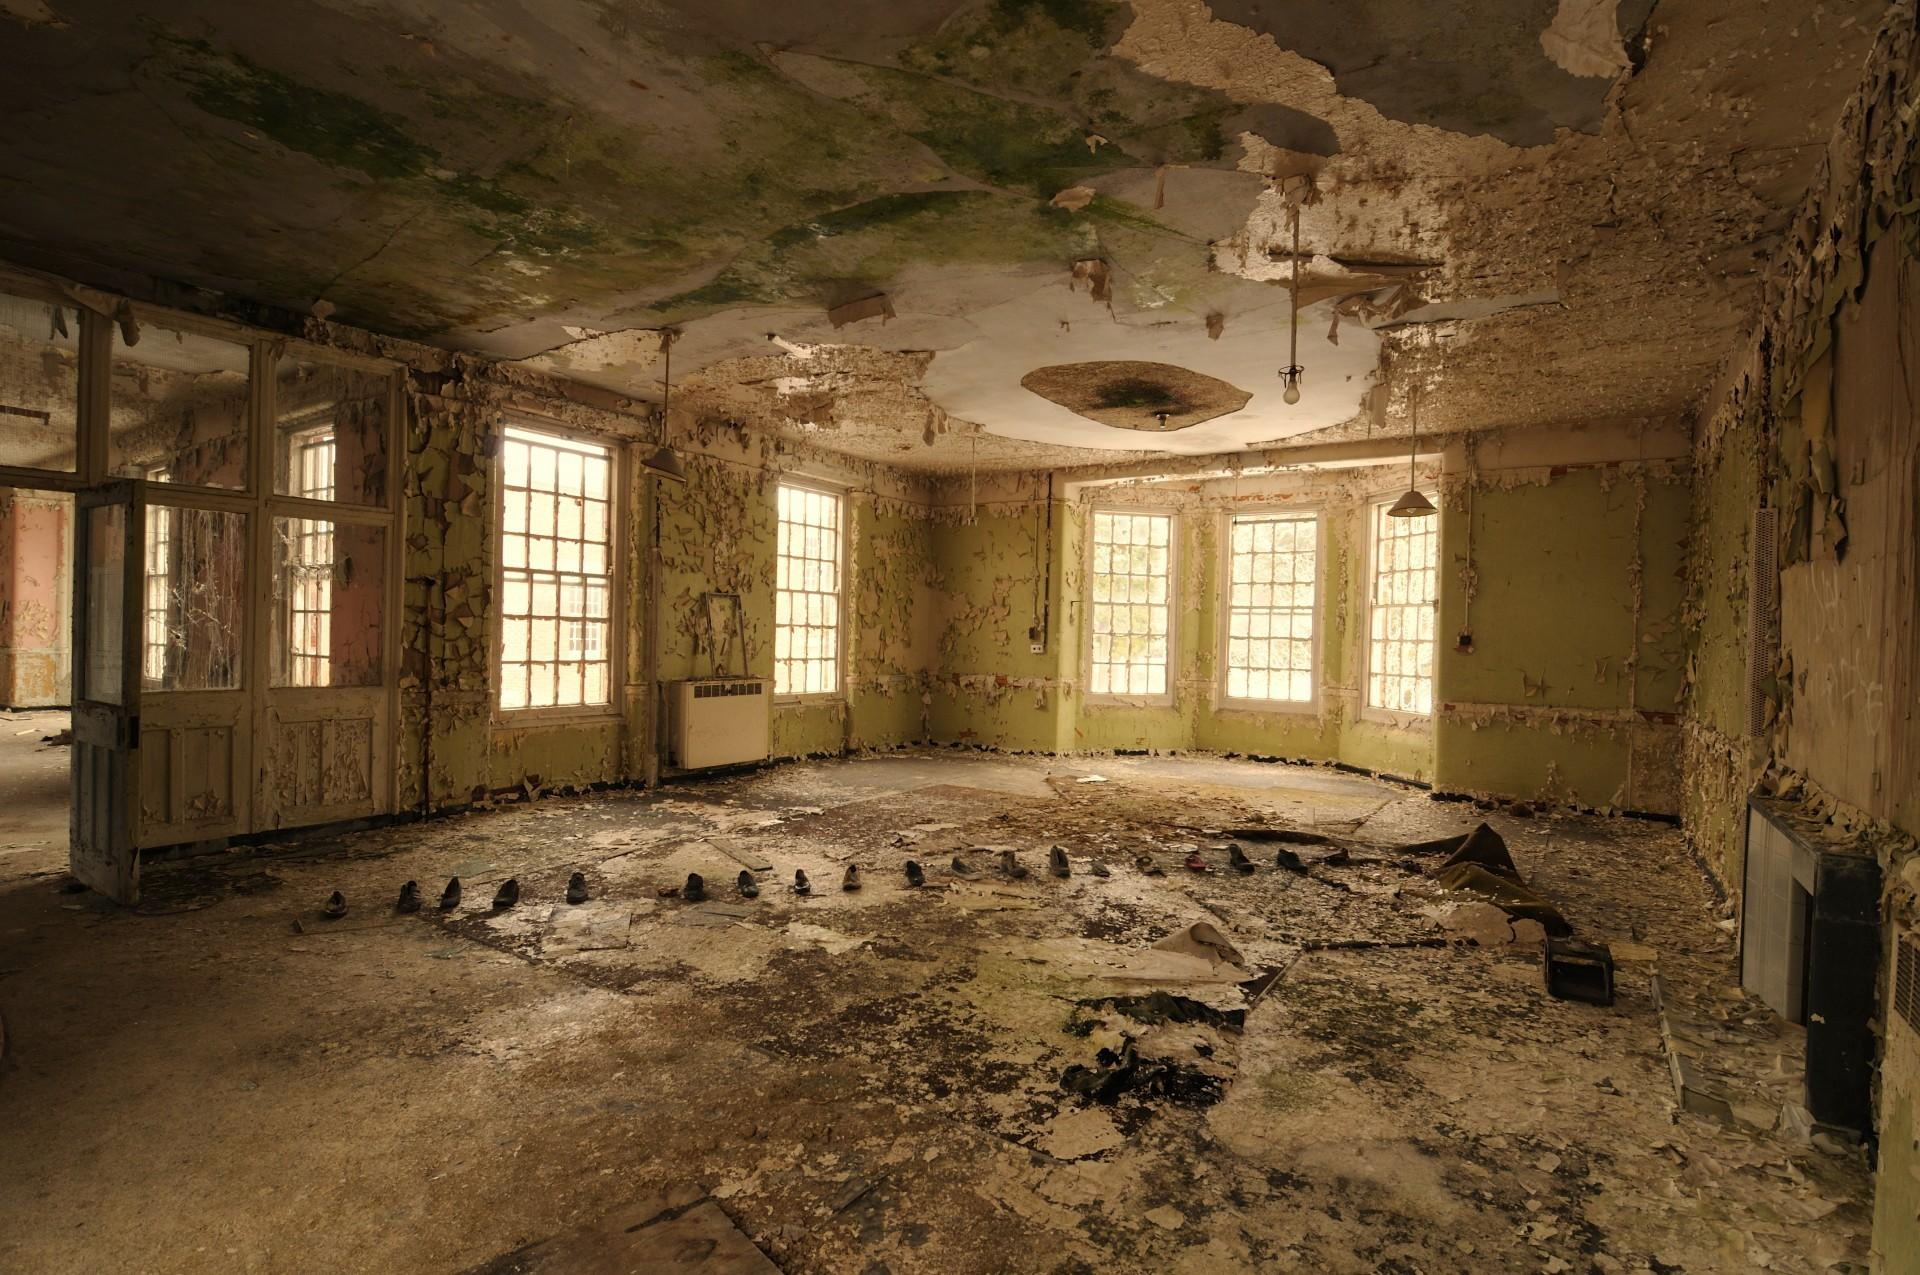 West Park Asylum David Baker Documentary Photographer